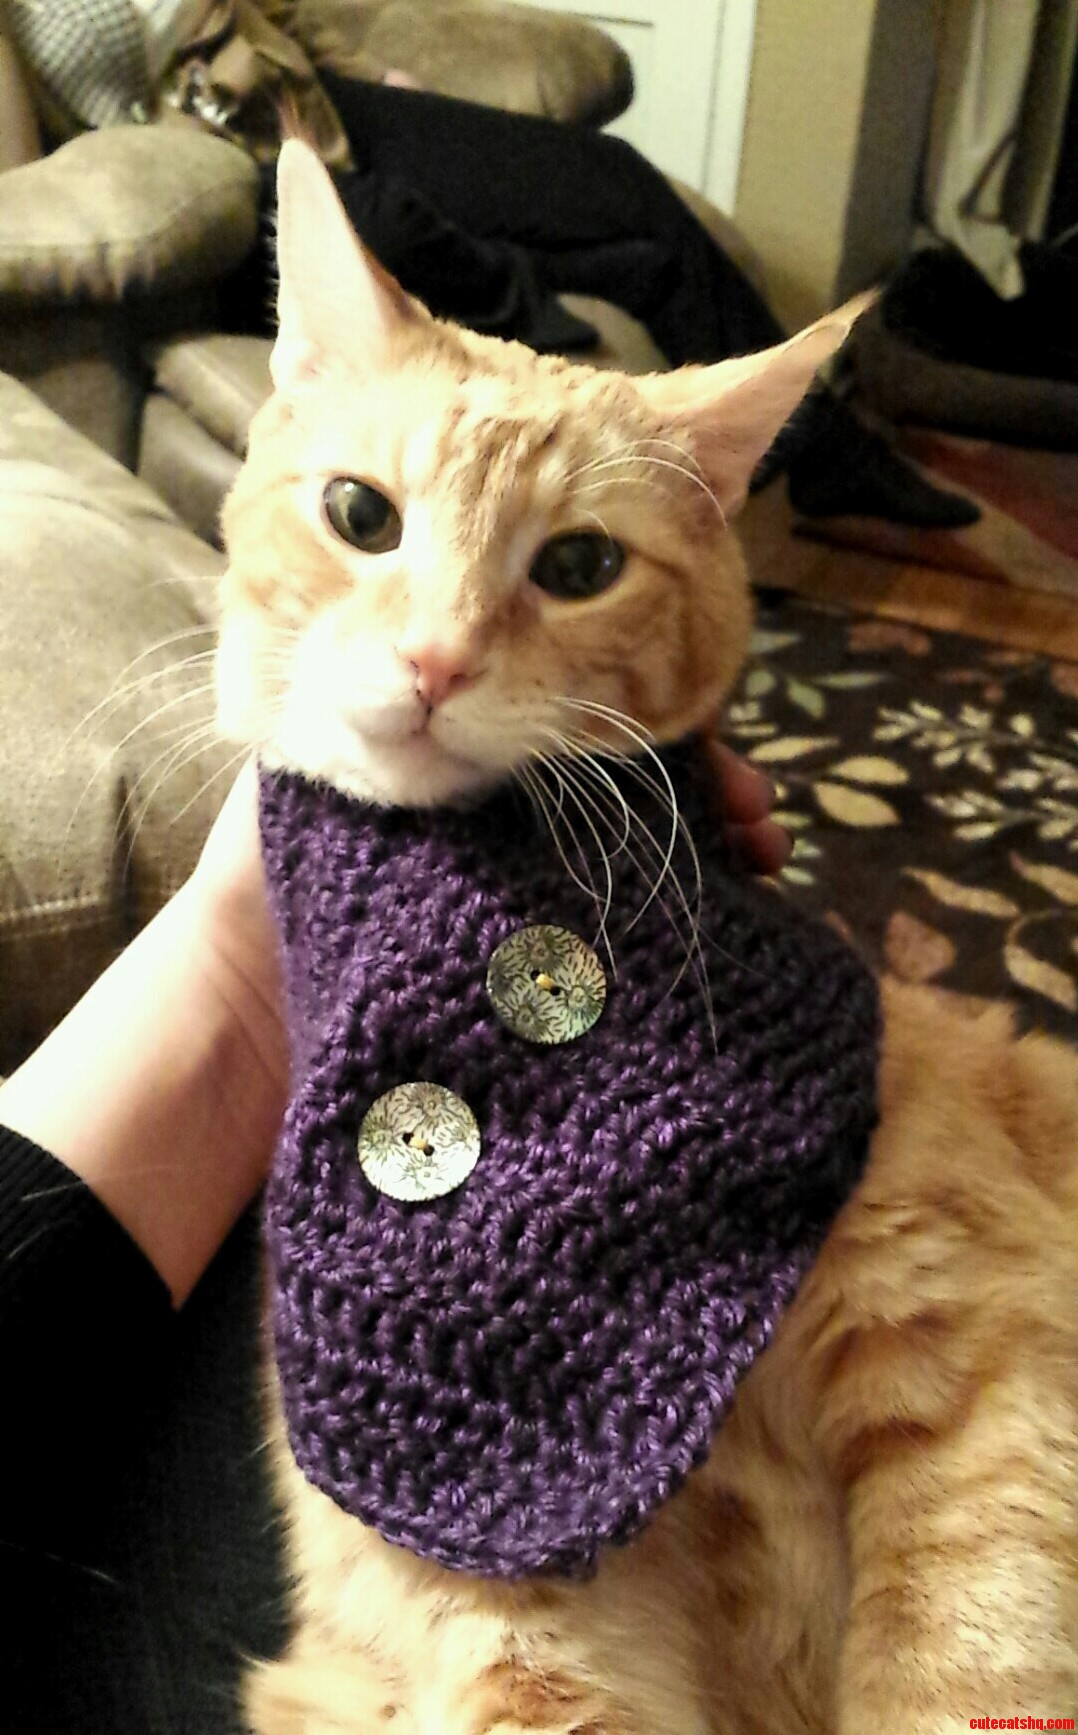 Hipster Kitty | Cute cats HQ - Pictures of cute cats and ...